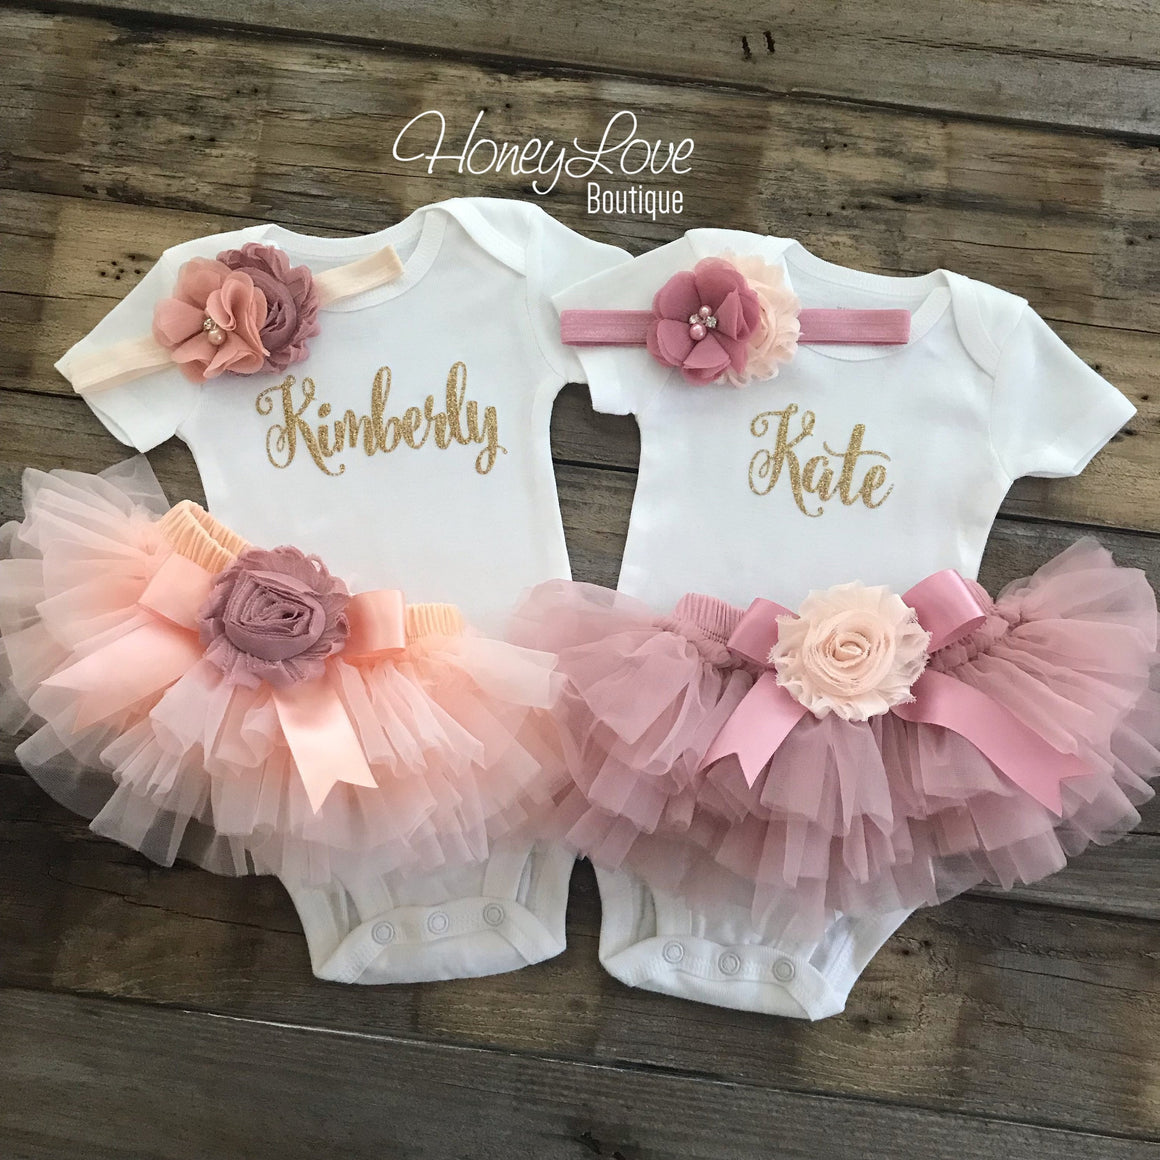 TWIN GIRLS! Peach and Vintage Pink Personalized Name Outfits - Gold, Silver or Rose Gold glitter - HoneyLoveBoutique